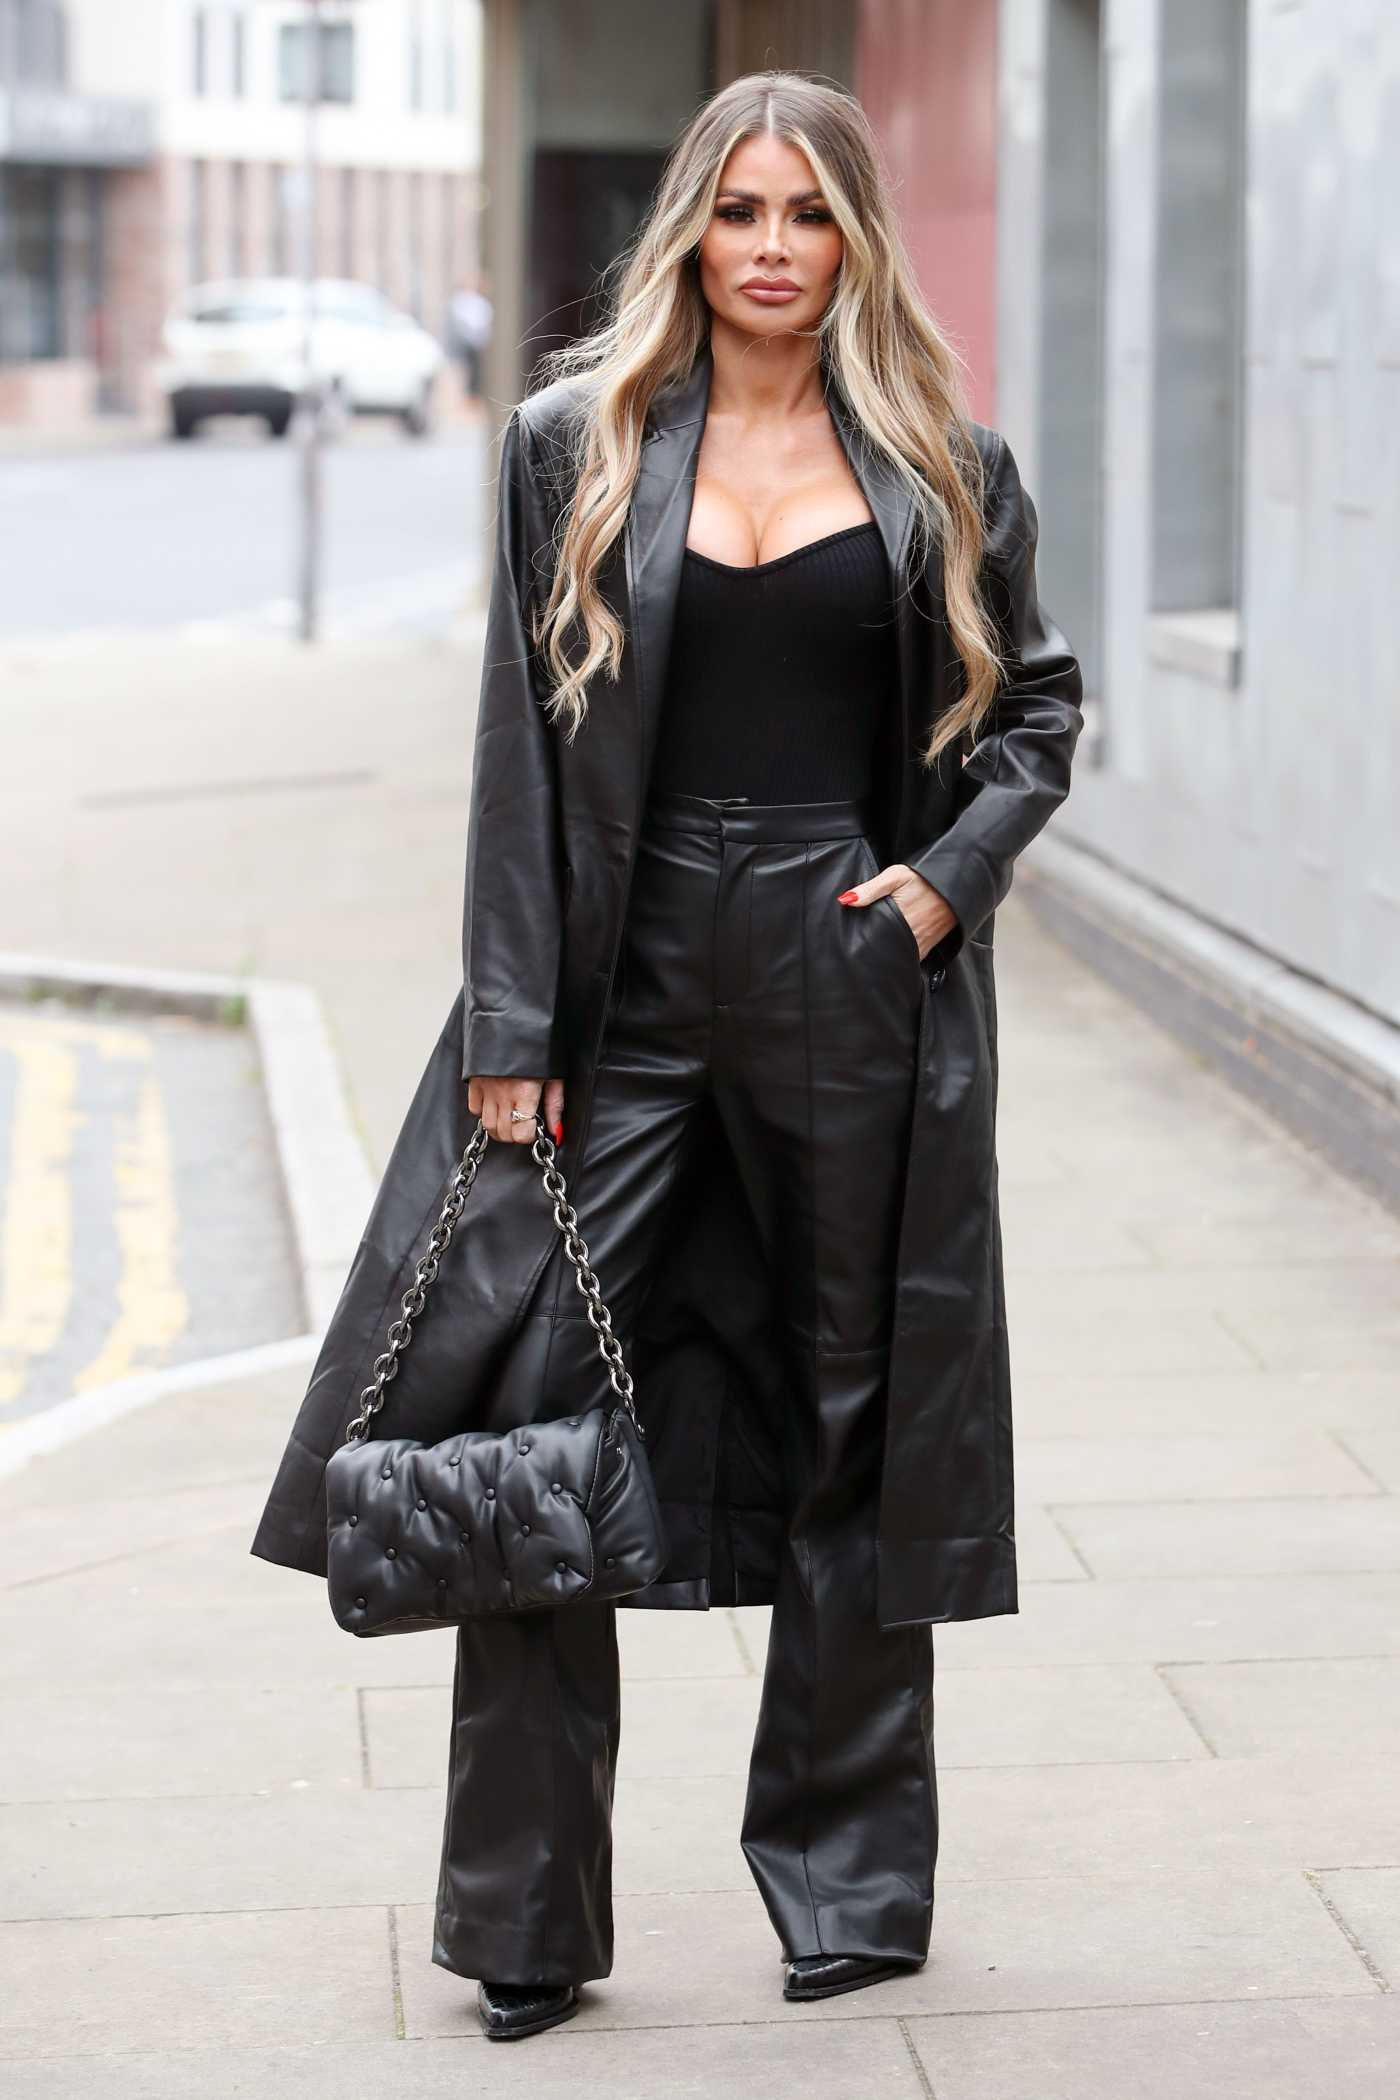 Chloe Sims in a Black Leather Outfit on the Set of The Only Way is Essex TV Show in Essex 09/21/2020